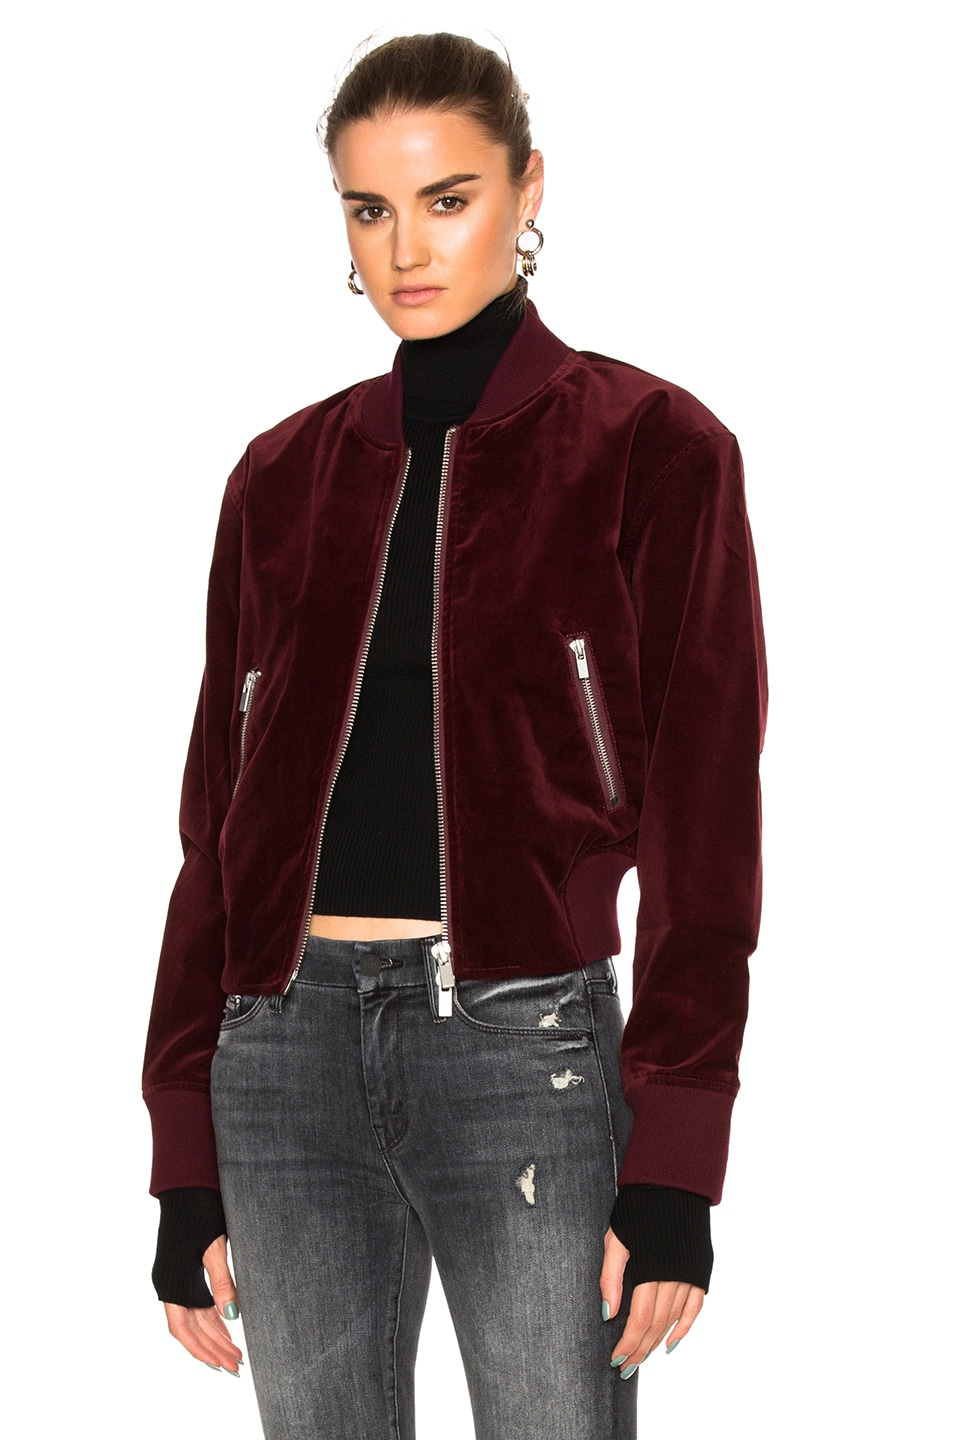 Image 1 of BLK DNM Jacket 26 in Burgundy